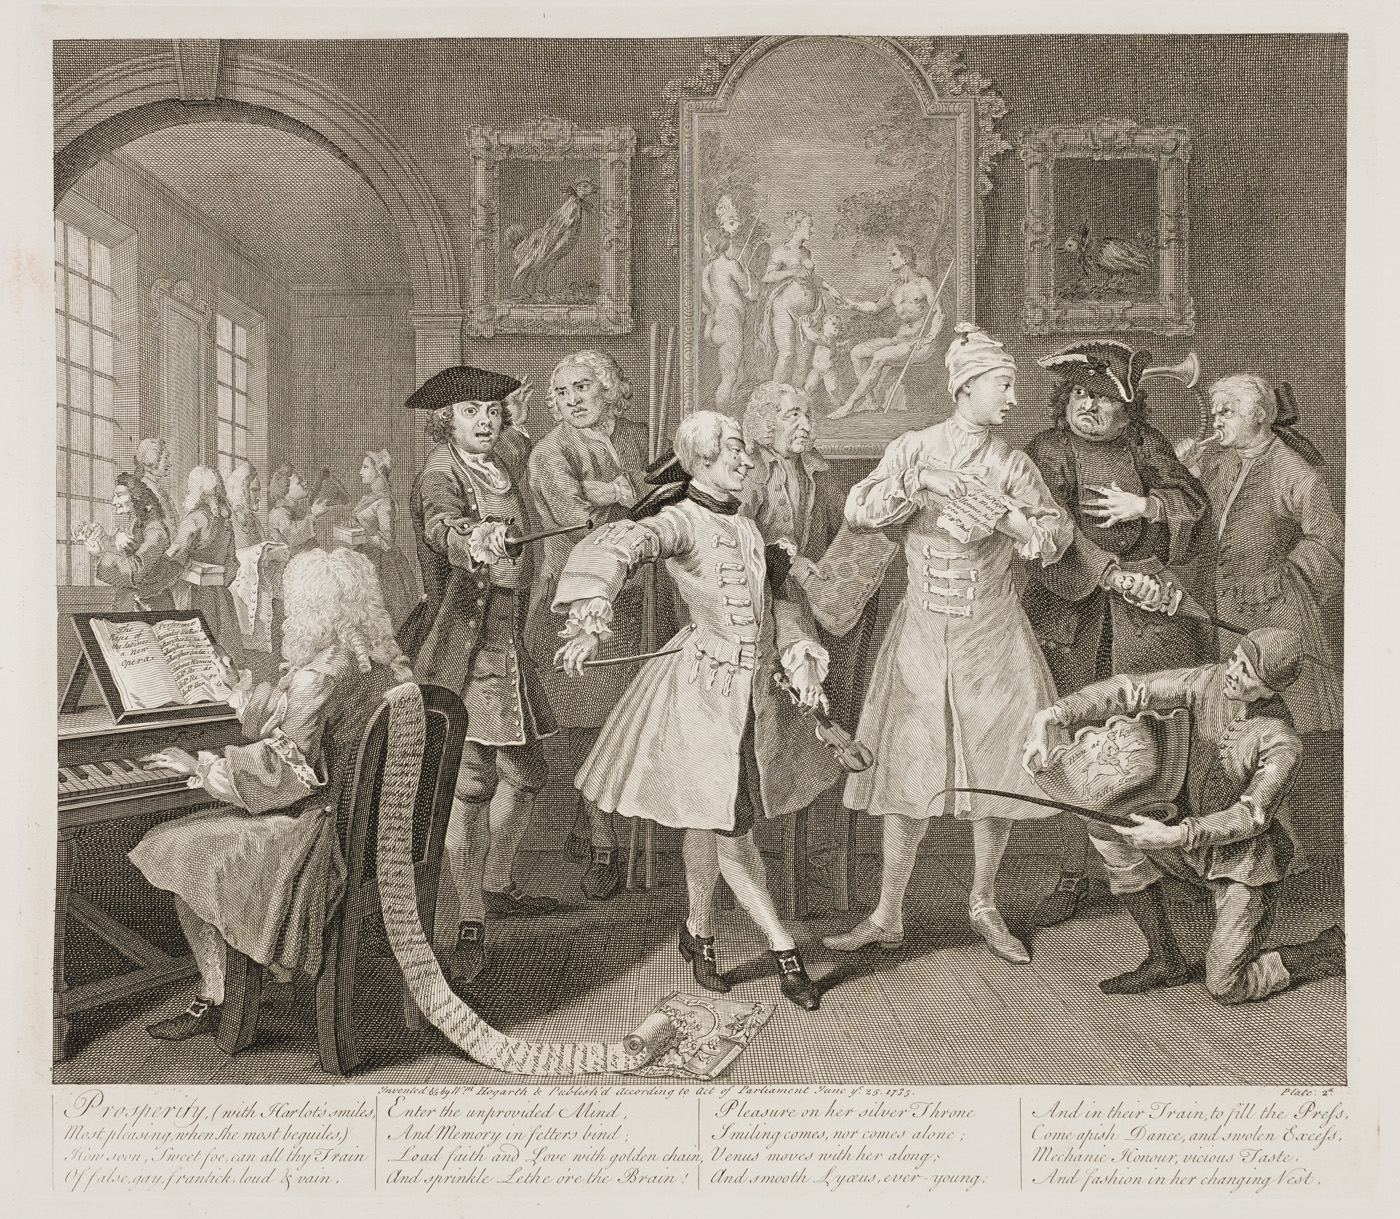 William Hogarth - The Rake's Progress plate 2